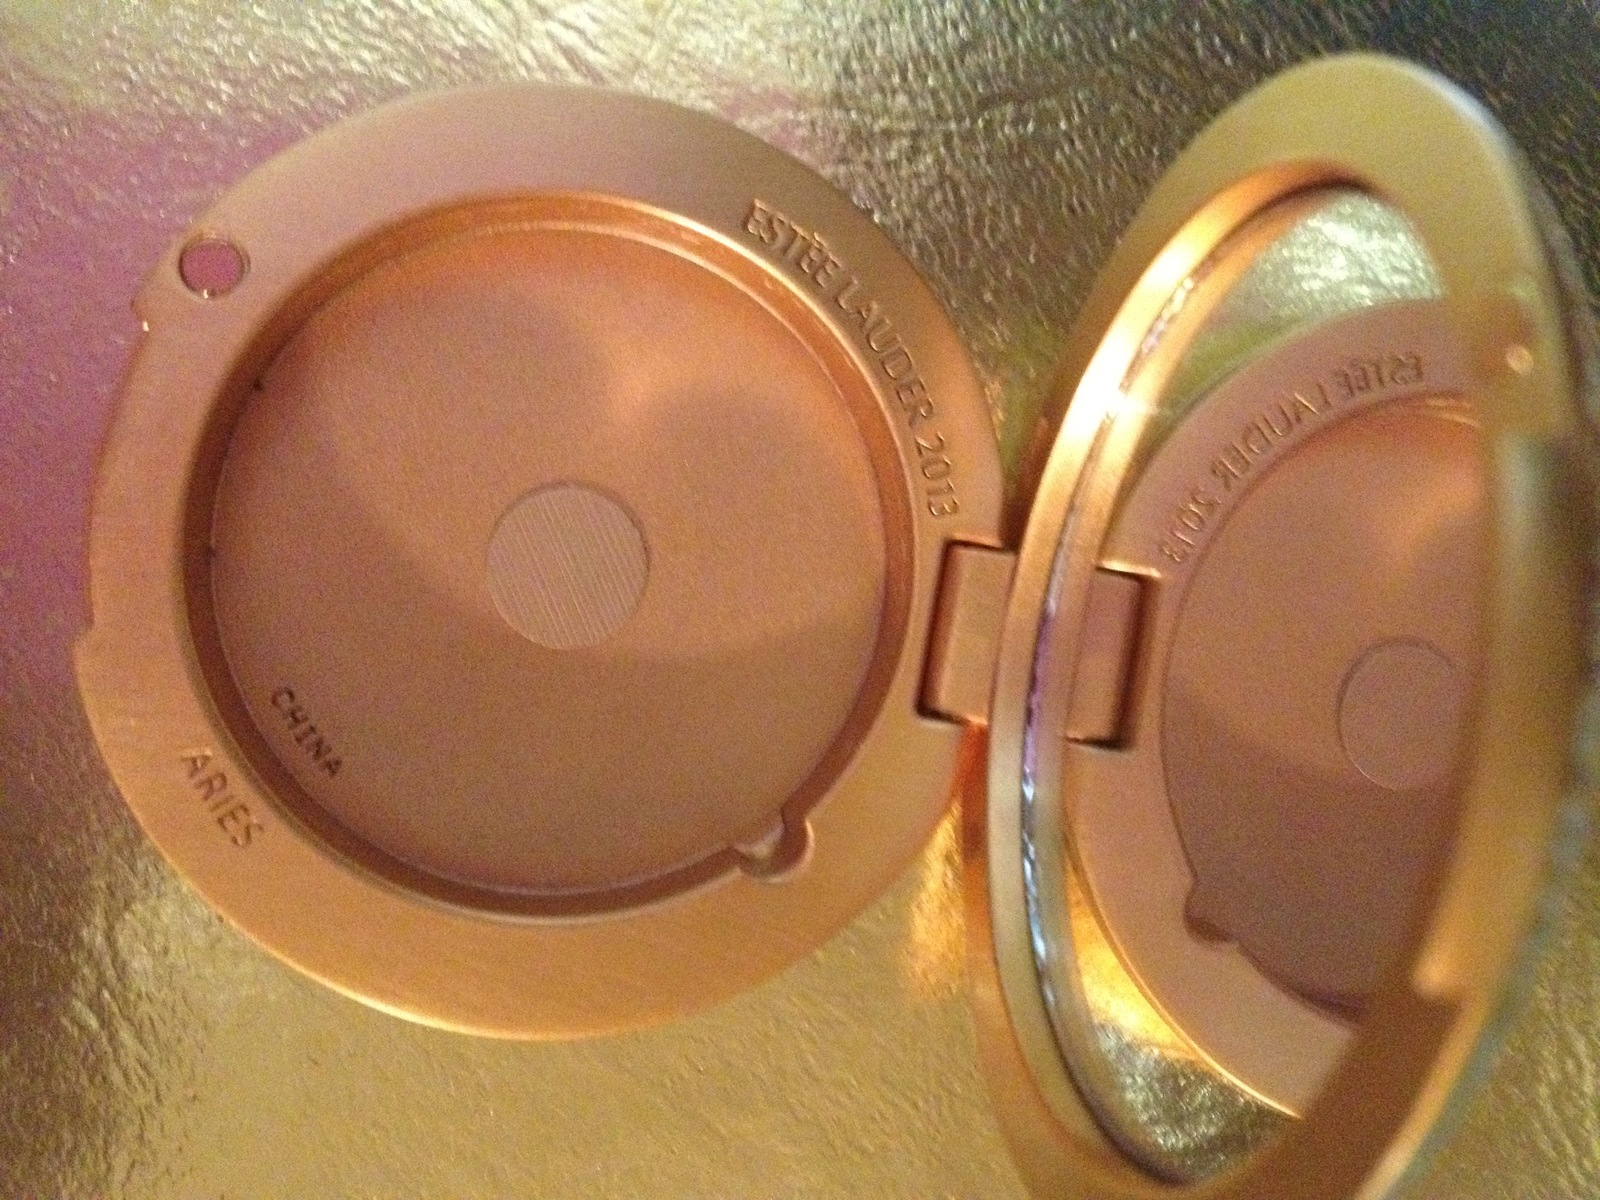 Estee Lauder GOLDEN ARIES Lucidity Powder Compact 2013 - Crystal accents